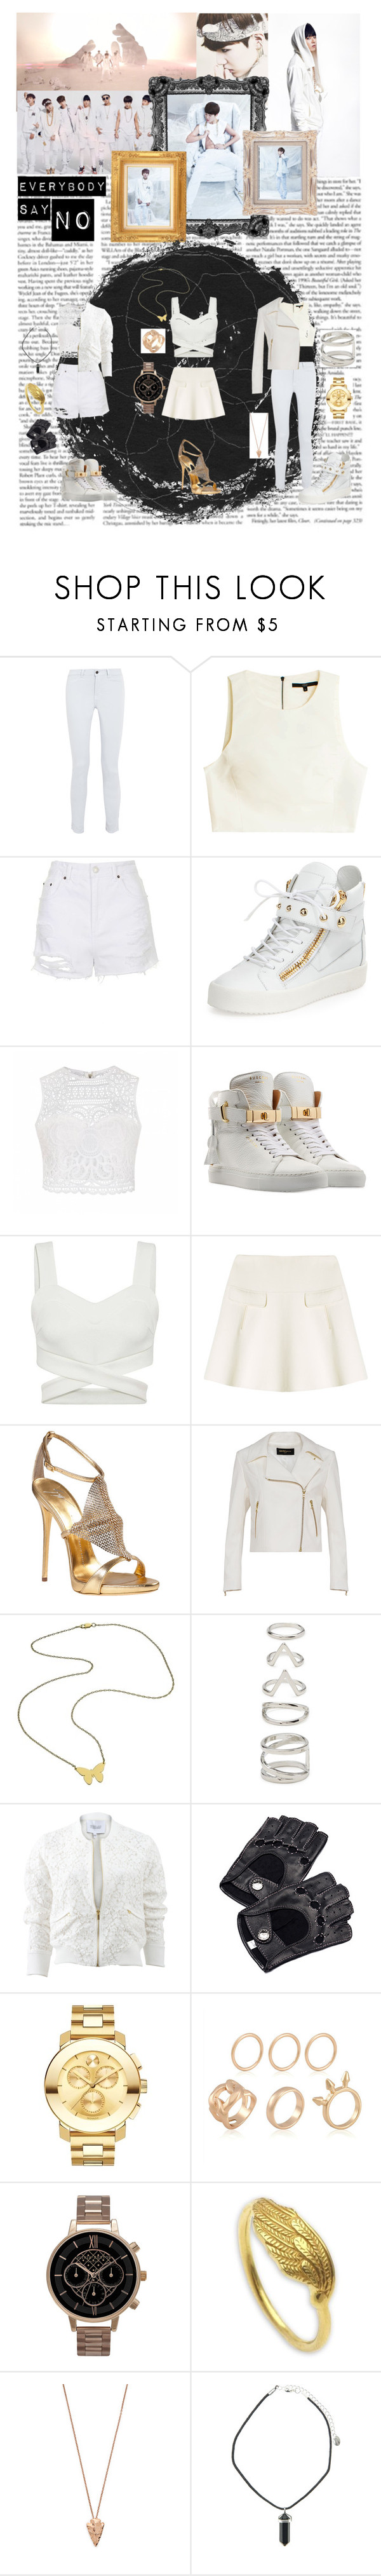 """Everybody say N.O"" by choihyora123 ❤ liked on Polyvore featuring J Brand, TIBI, Topshop, Giuseppe Zanotti, Ally Fashion, BUSCEMI, Oscar de la Renta, Jennifer Zeuner, Forever 21 and 10 Crosby Derek Lam"